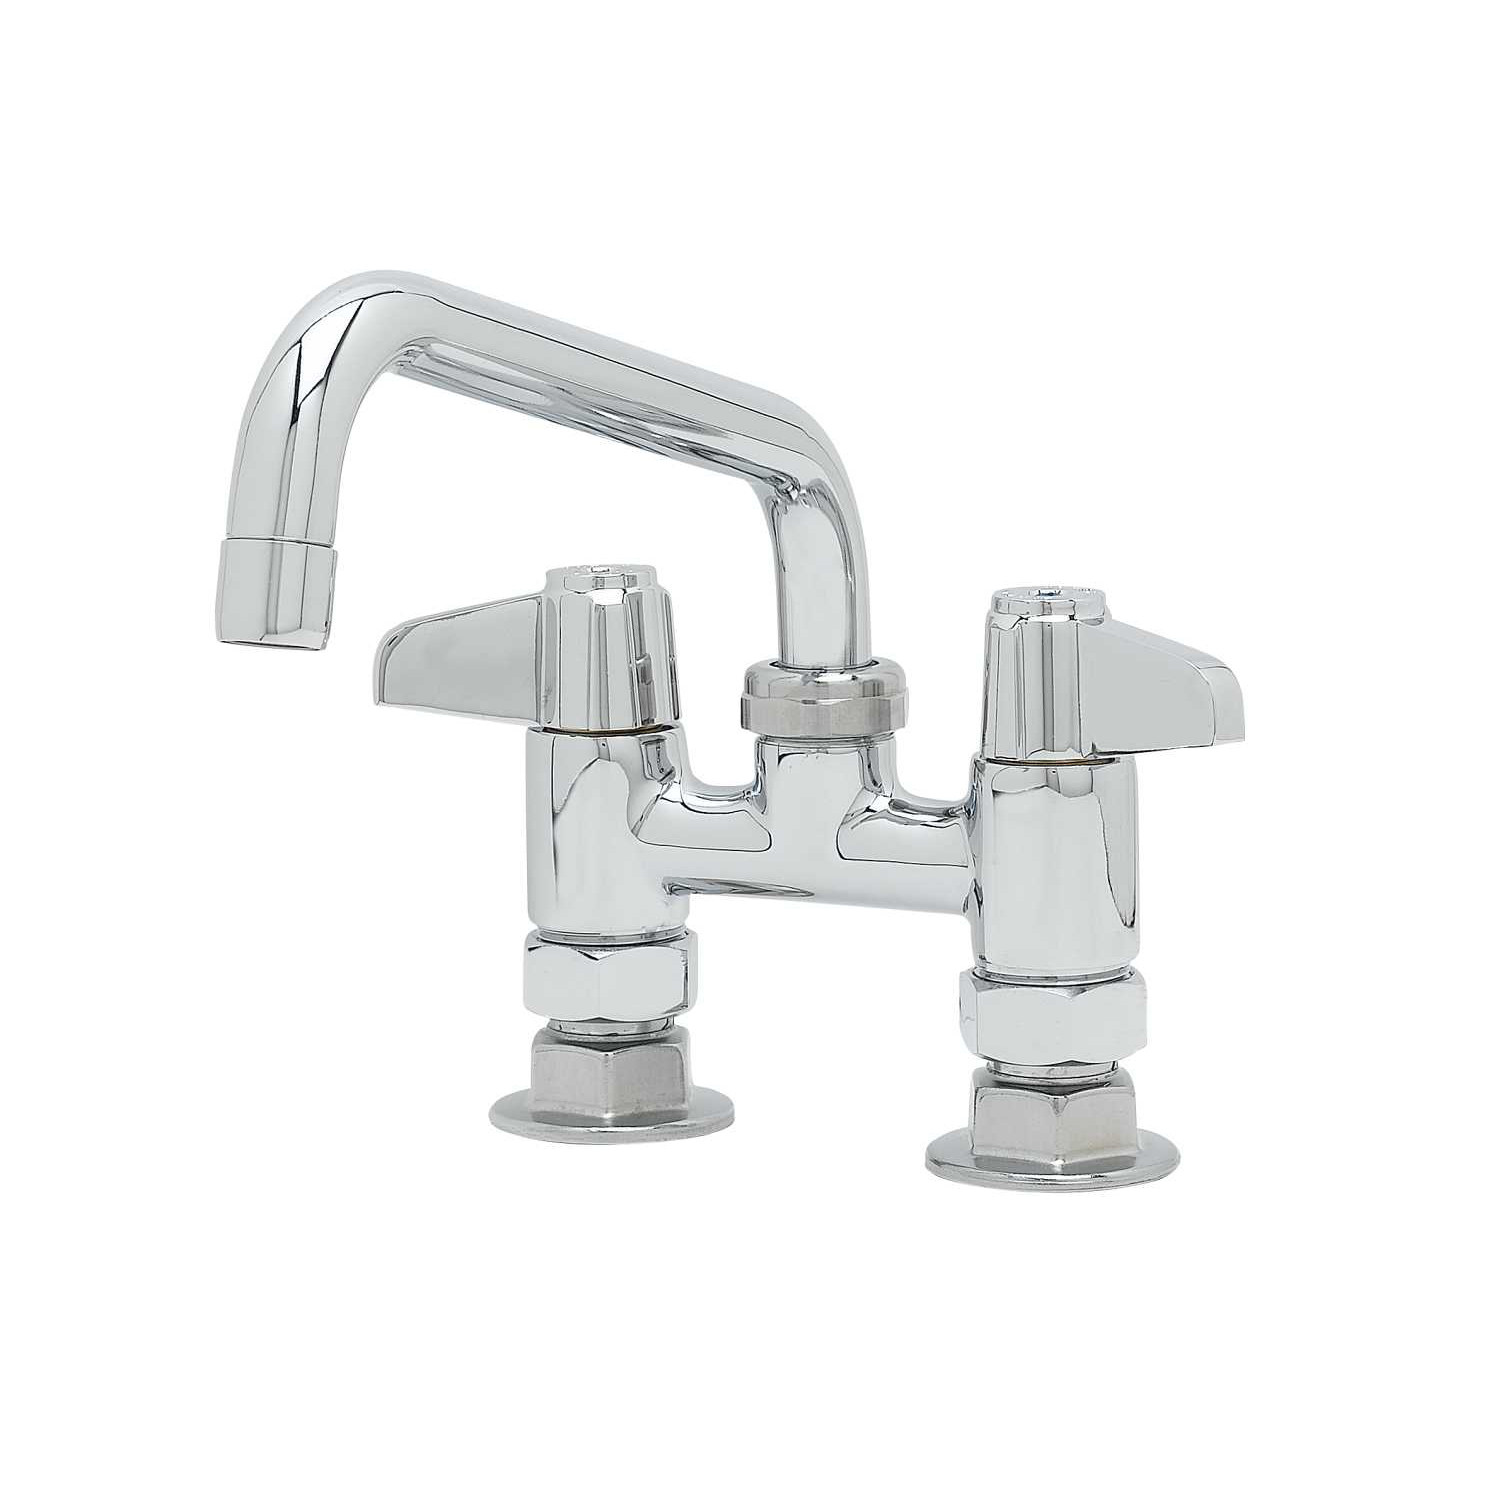 gpm p control spout male s faucet b t flow with brass polished knob npsm chrome dipperwell plated inlet faucets body and